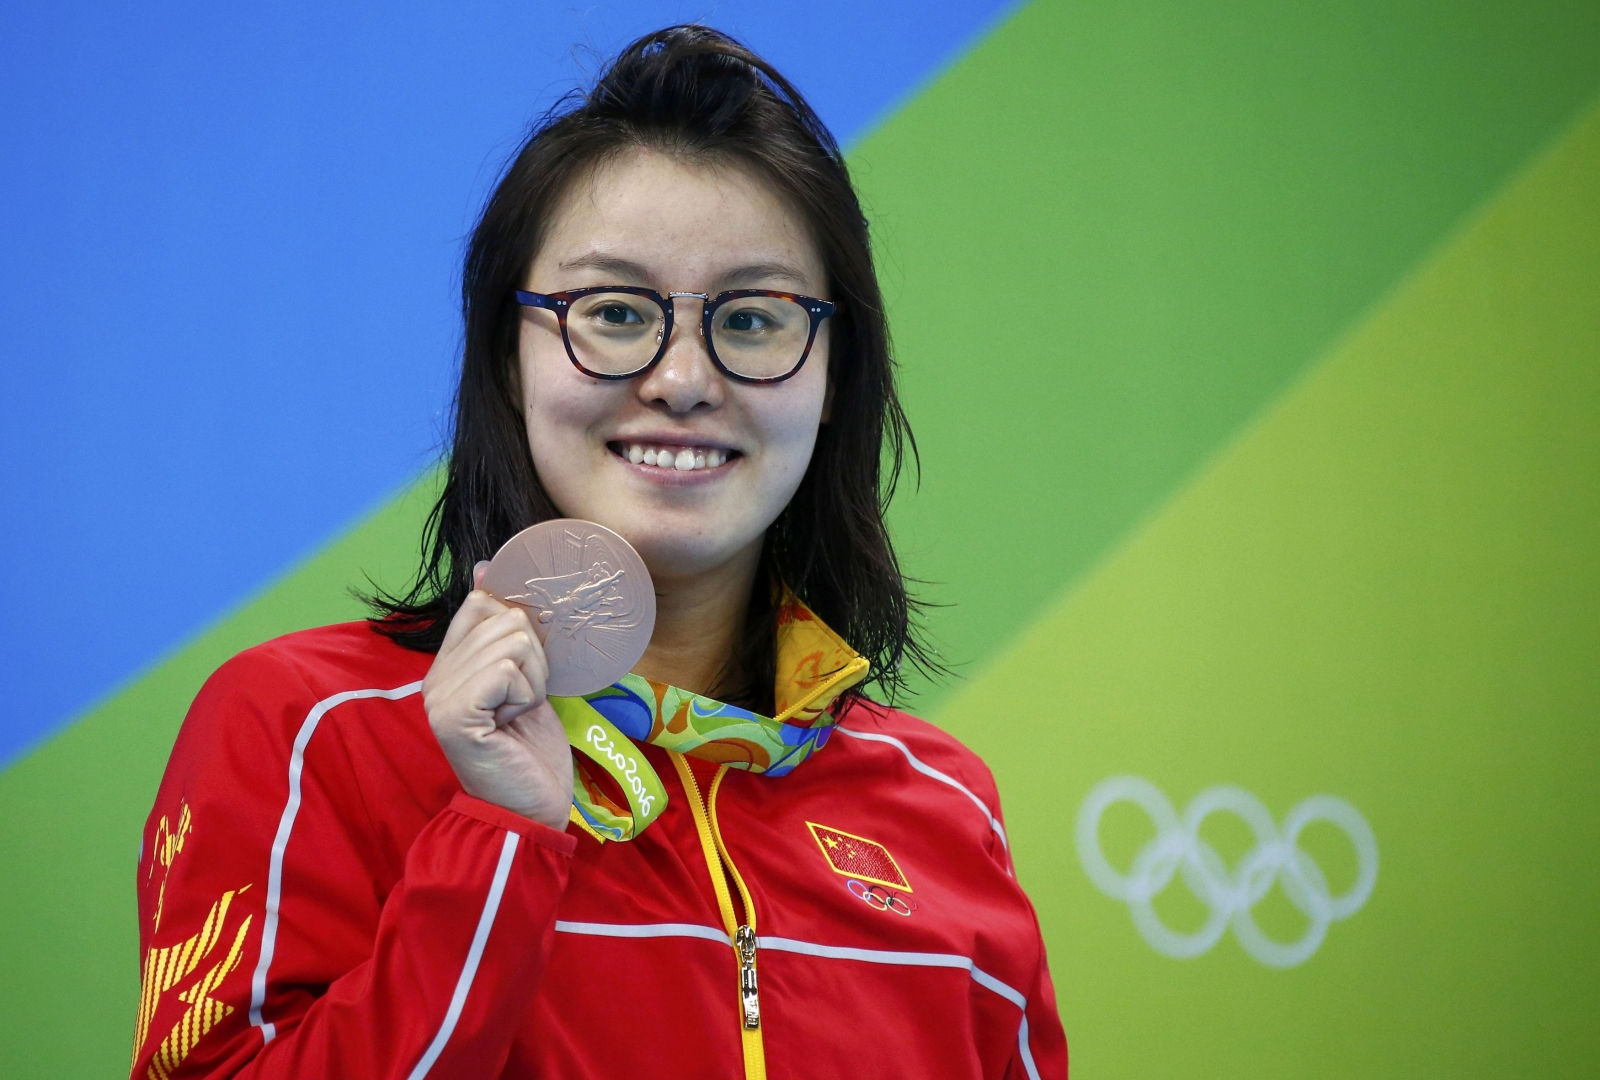 Rio 2016 Chinese Swimmer Praised For Breaking Period Taboo